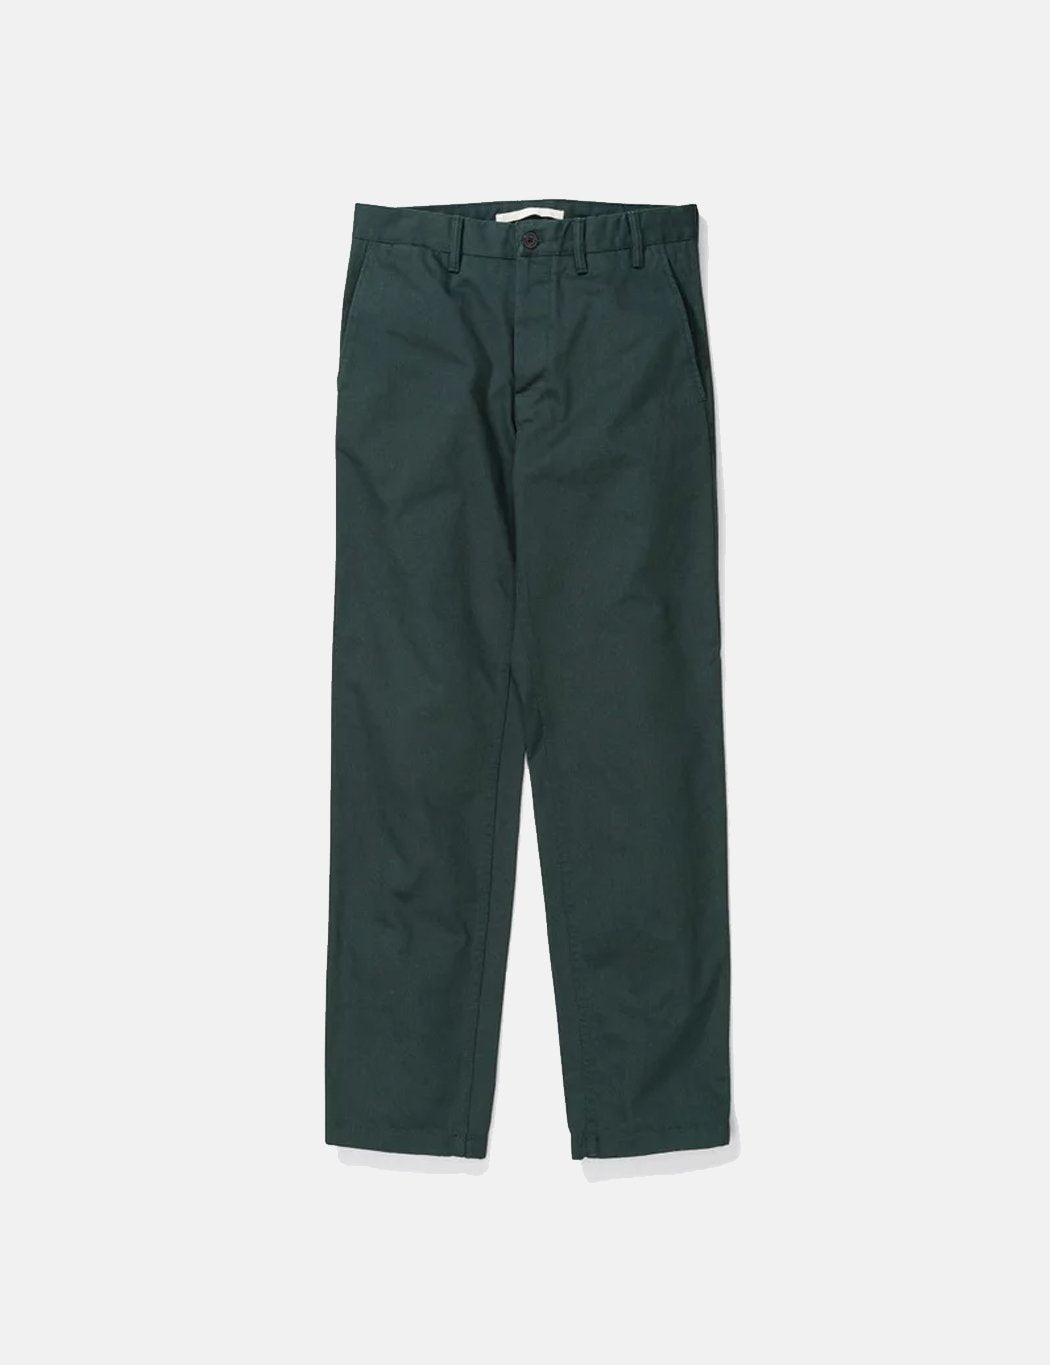 Norse Projects Aros Schwere Chino (Regular) - Spinnaker Grün